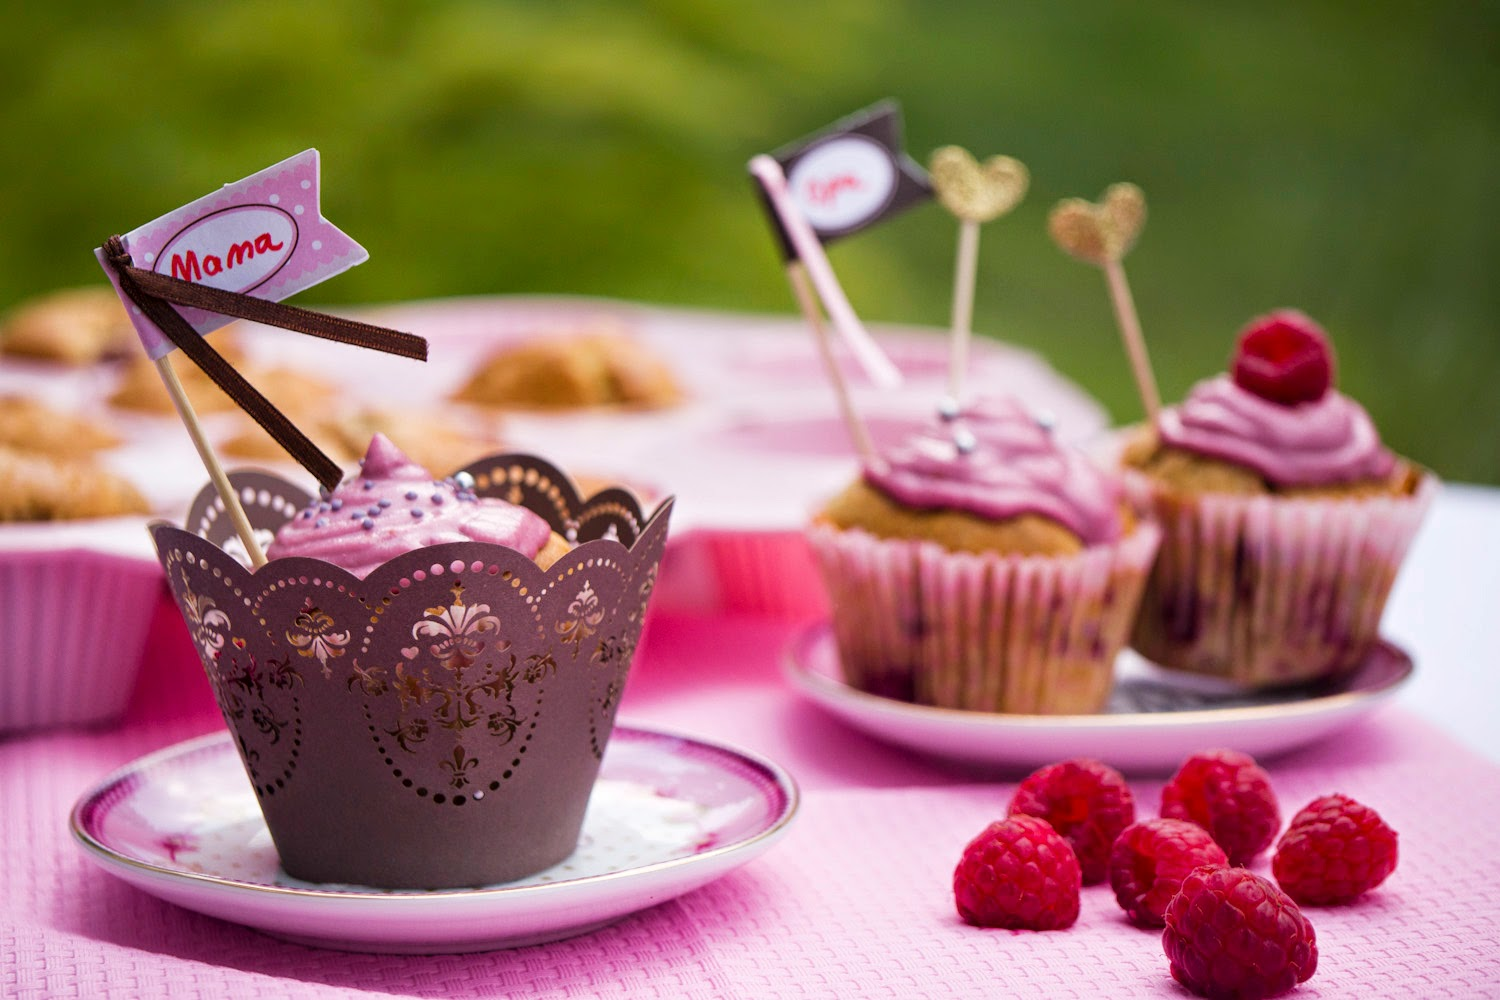 Himbeercreme-Cupcakes mit Marzipan-Frosting - eine wundervolle Backidee zum Muttertag